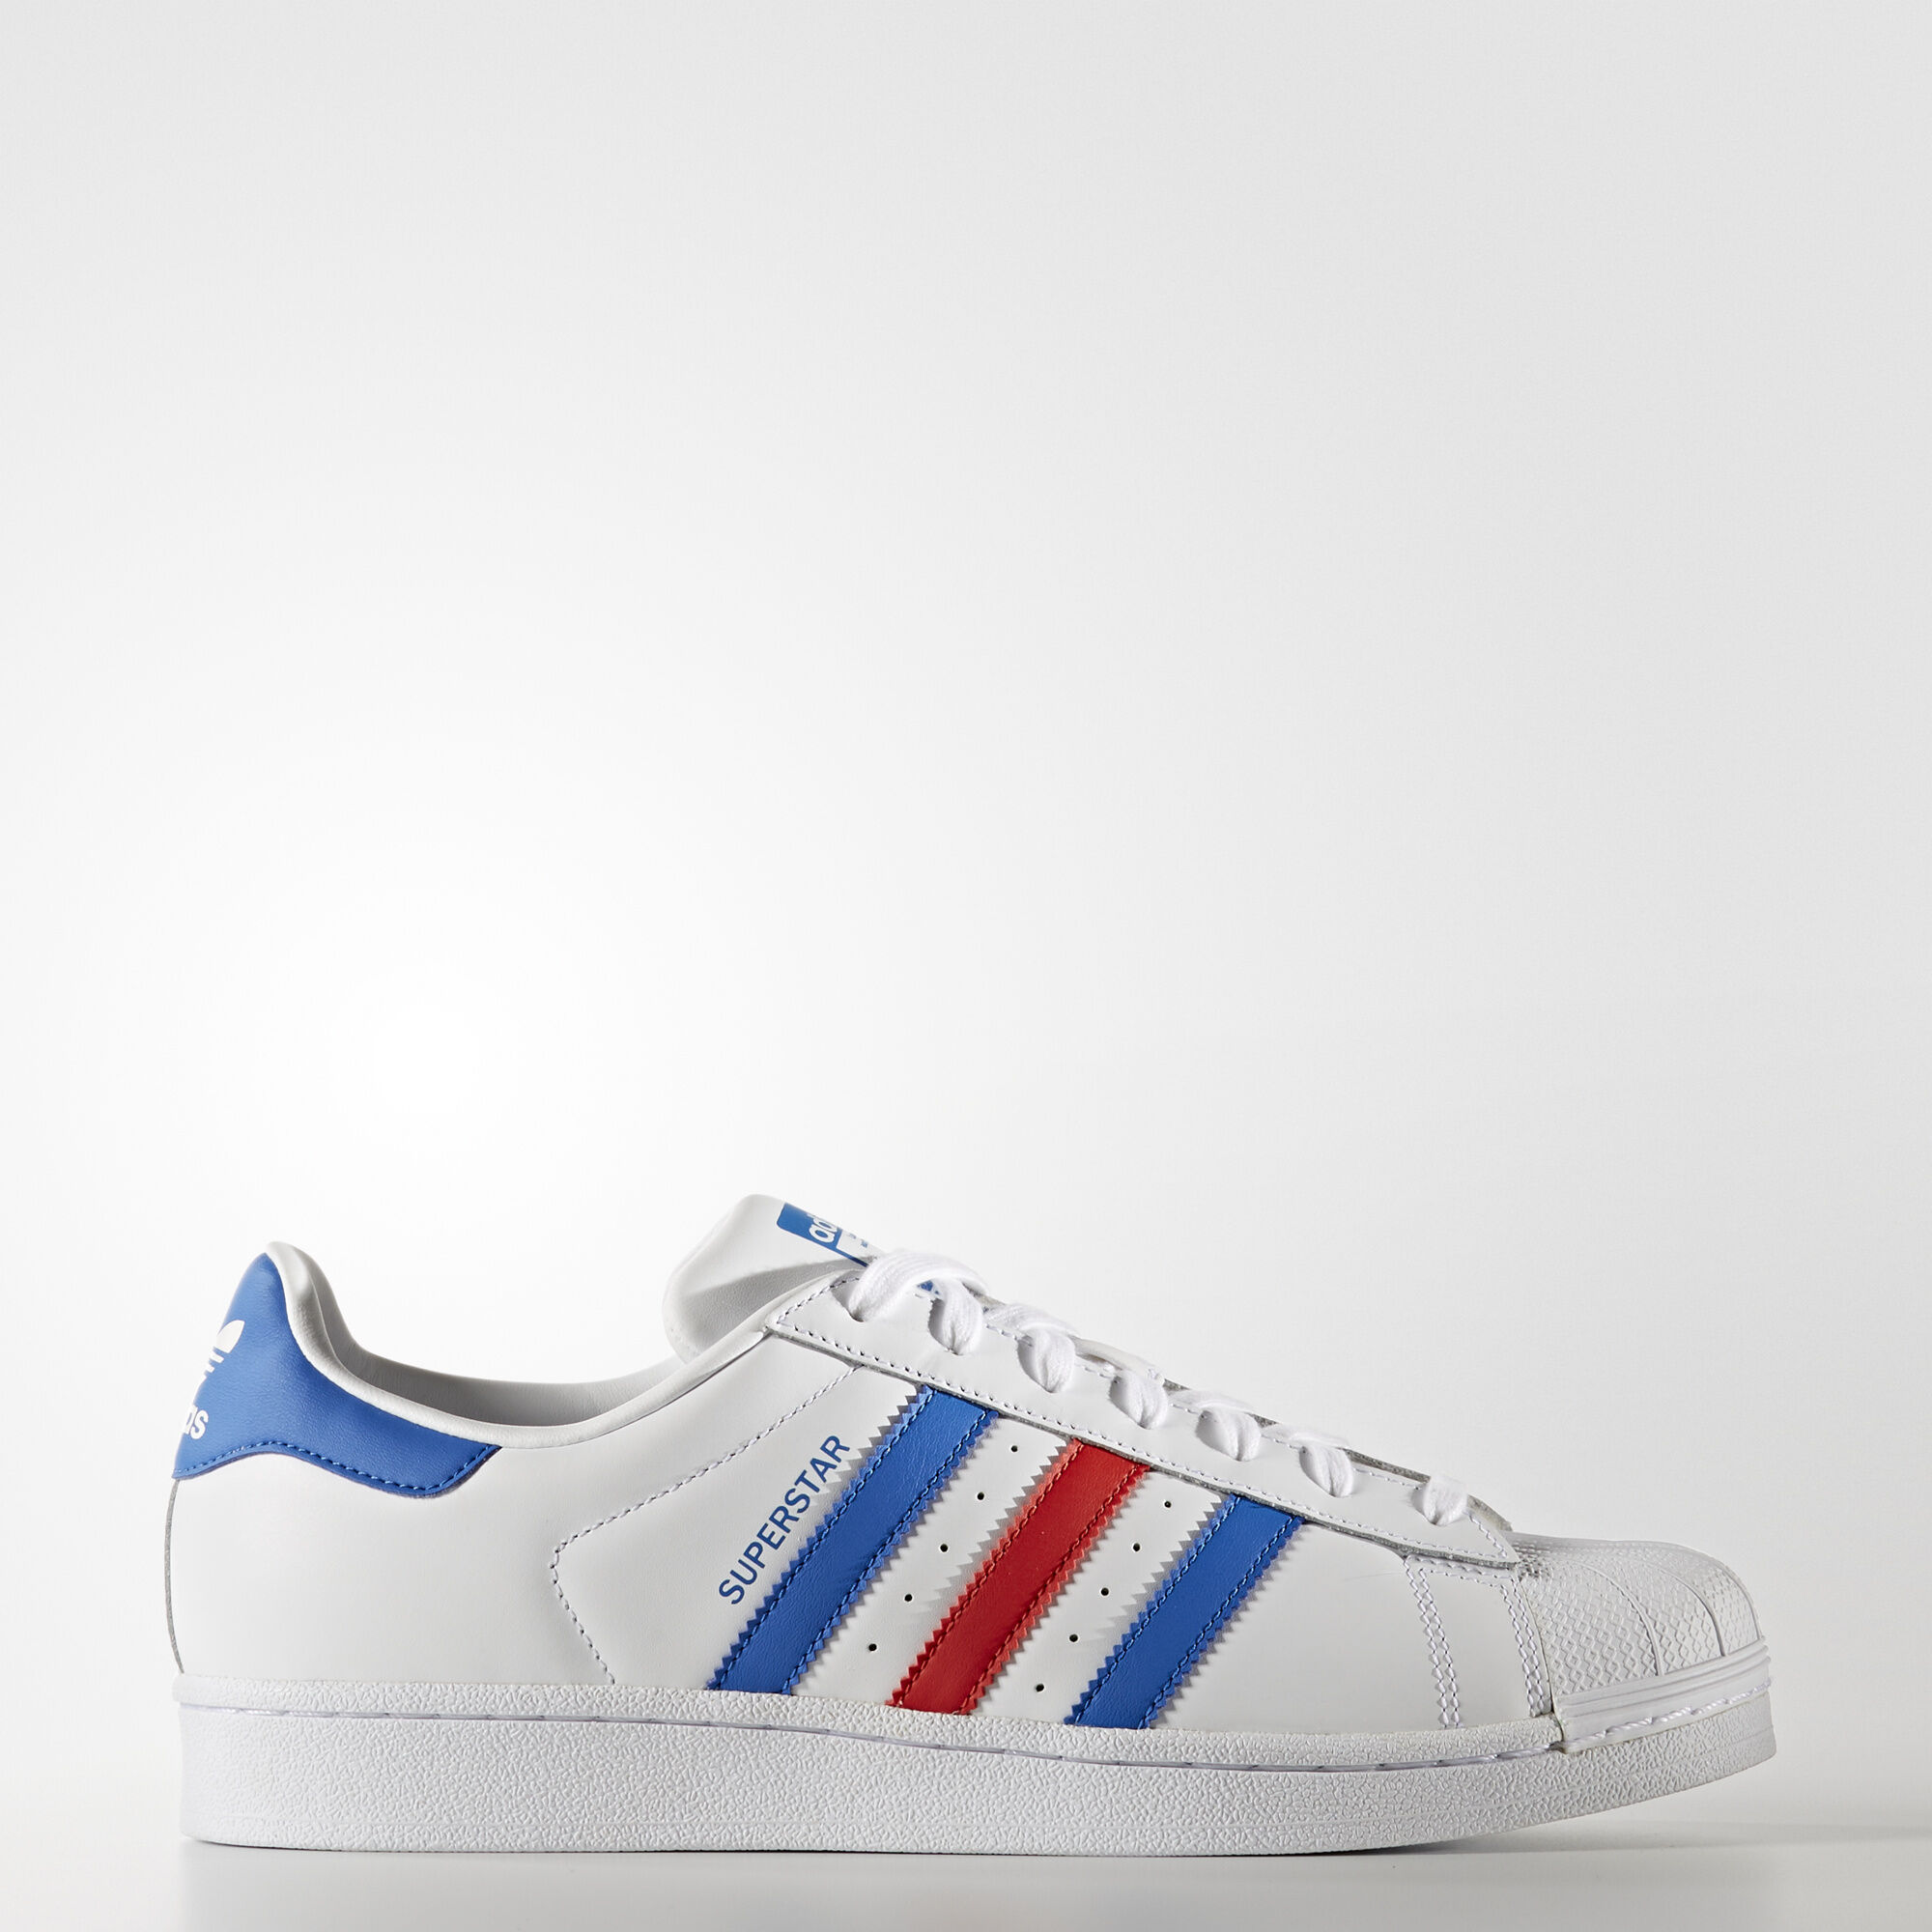 Adidas Superstar Blue Pink